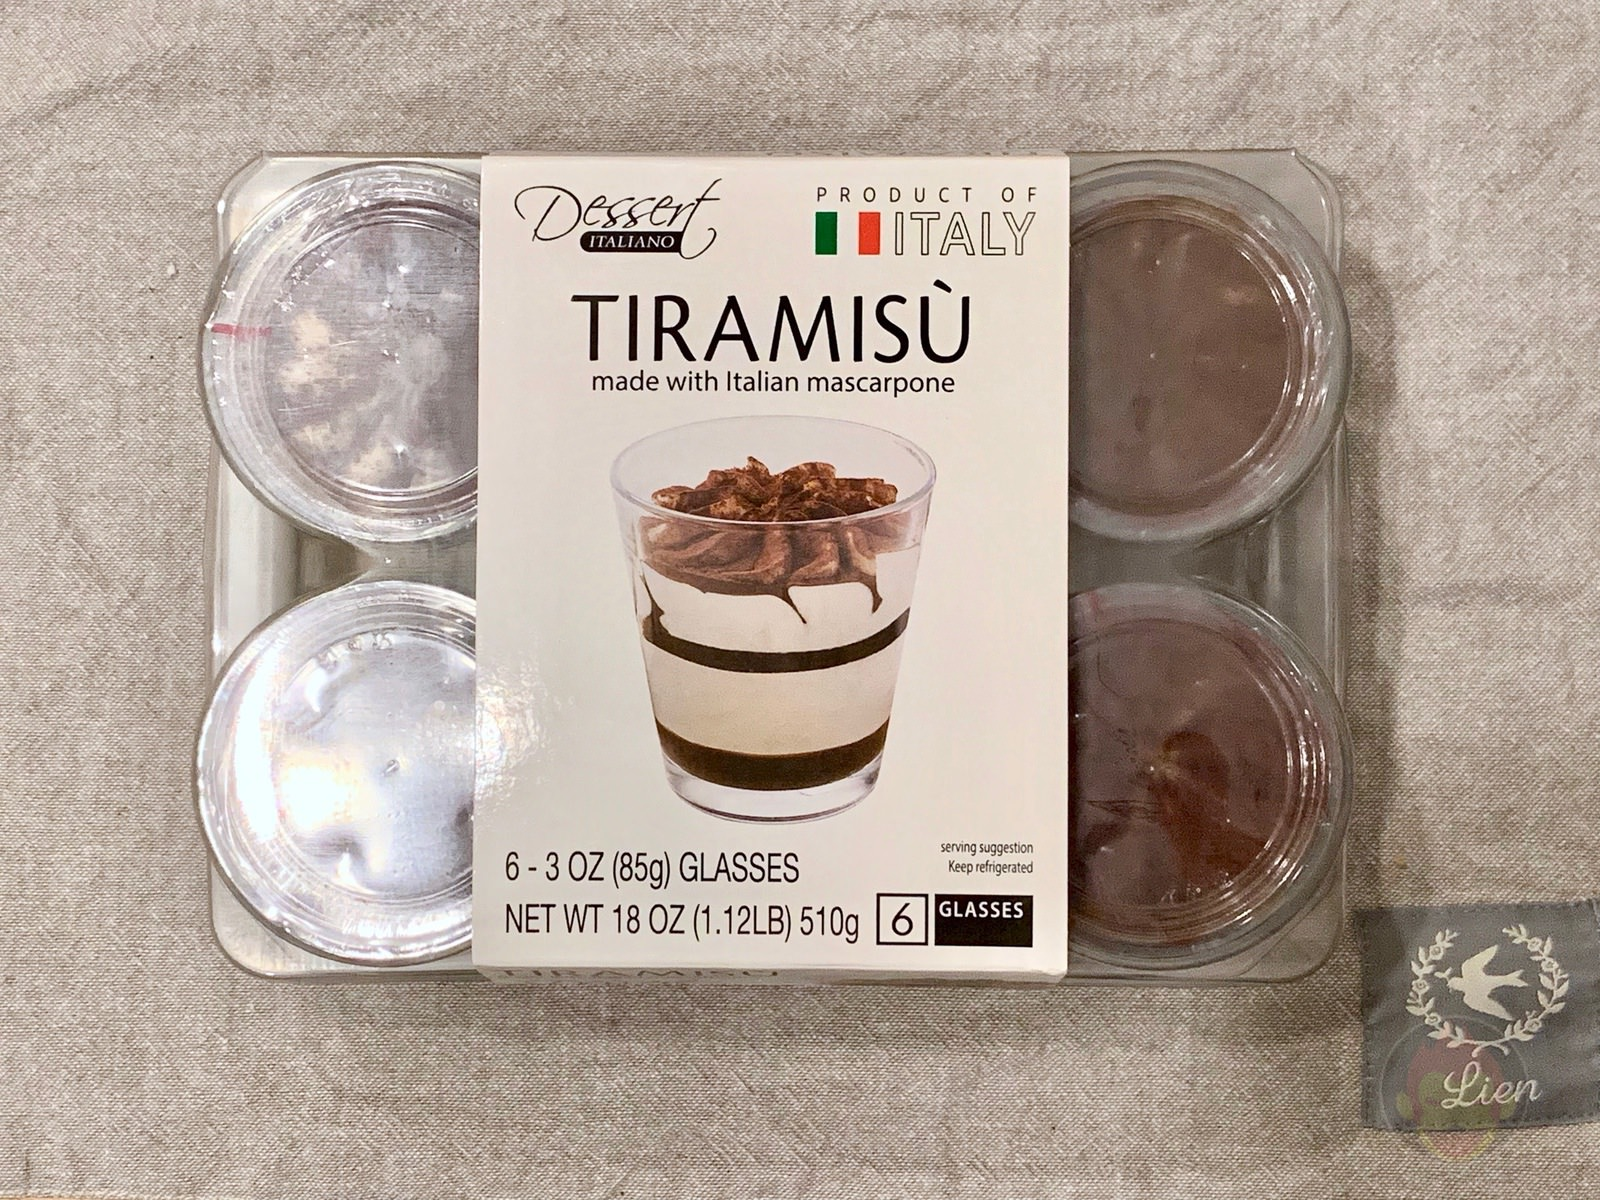 Delici-Tiramisu-Glass-Cup-Costco-09.jpg